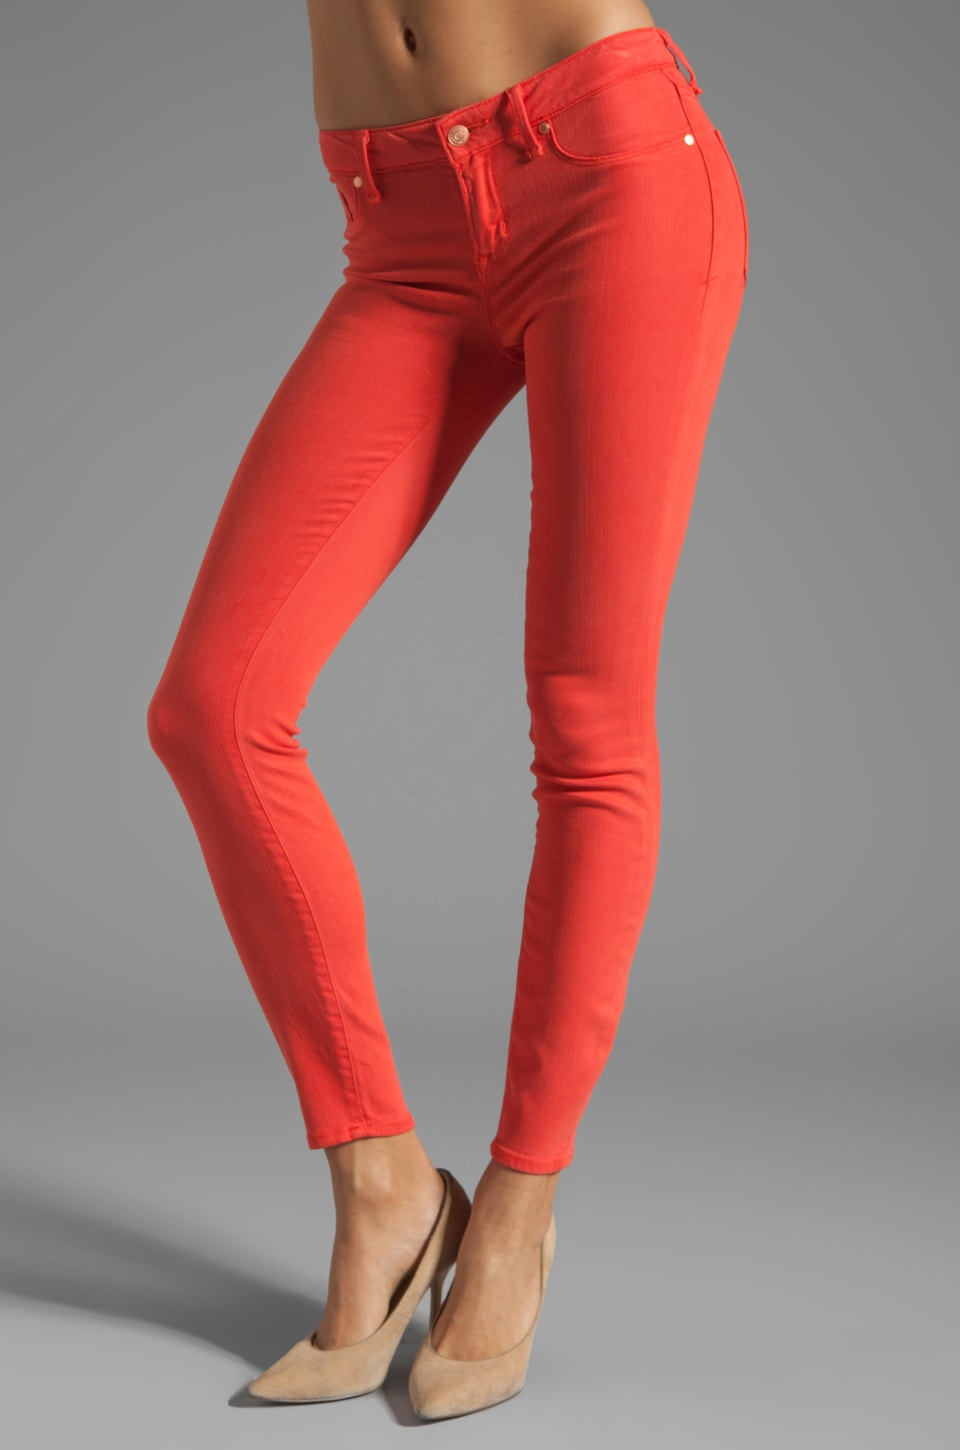 Marc by Marc Jacobs Stick Skinny in Flamingo Red